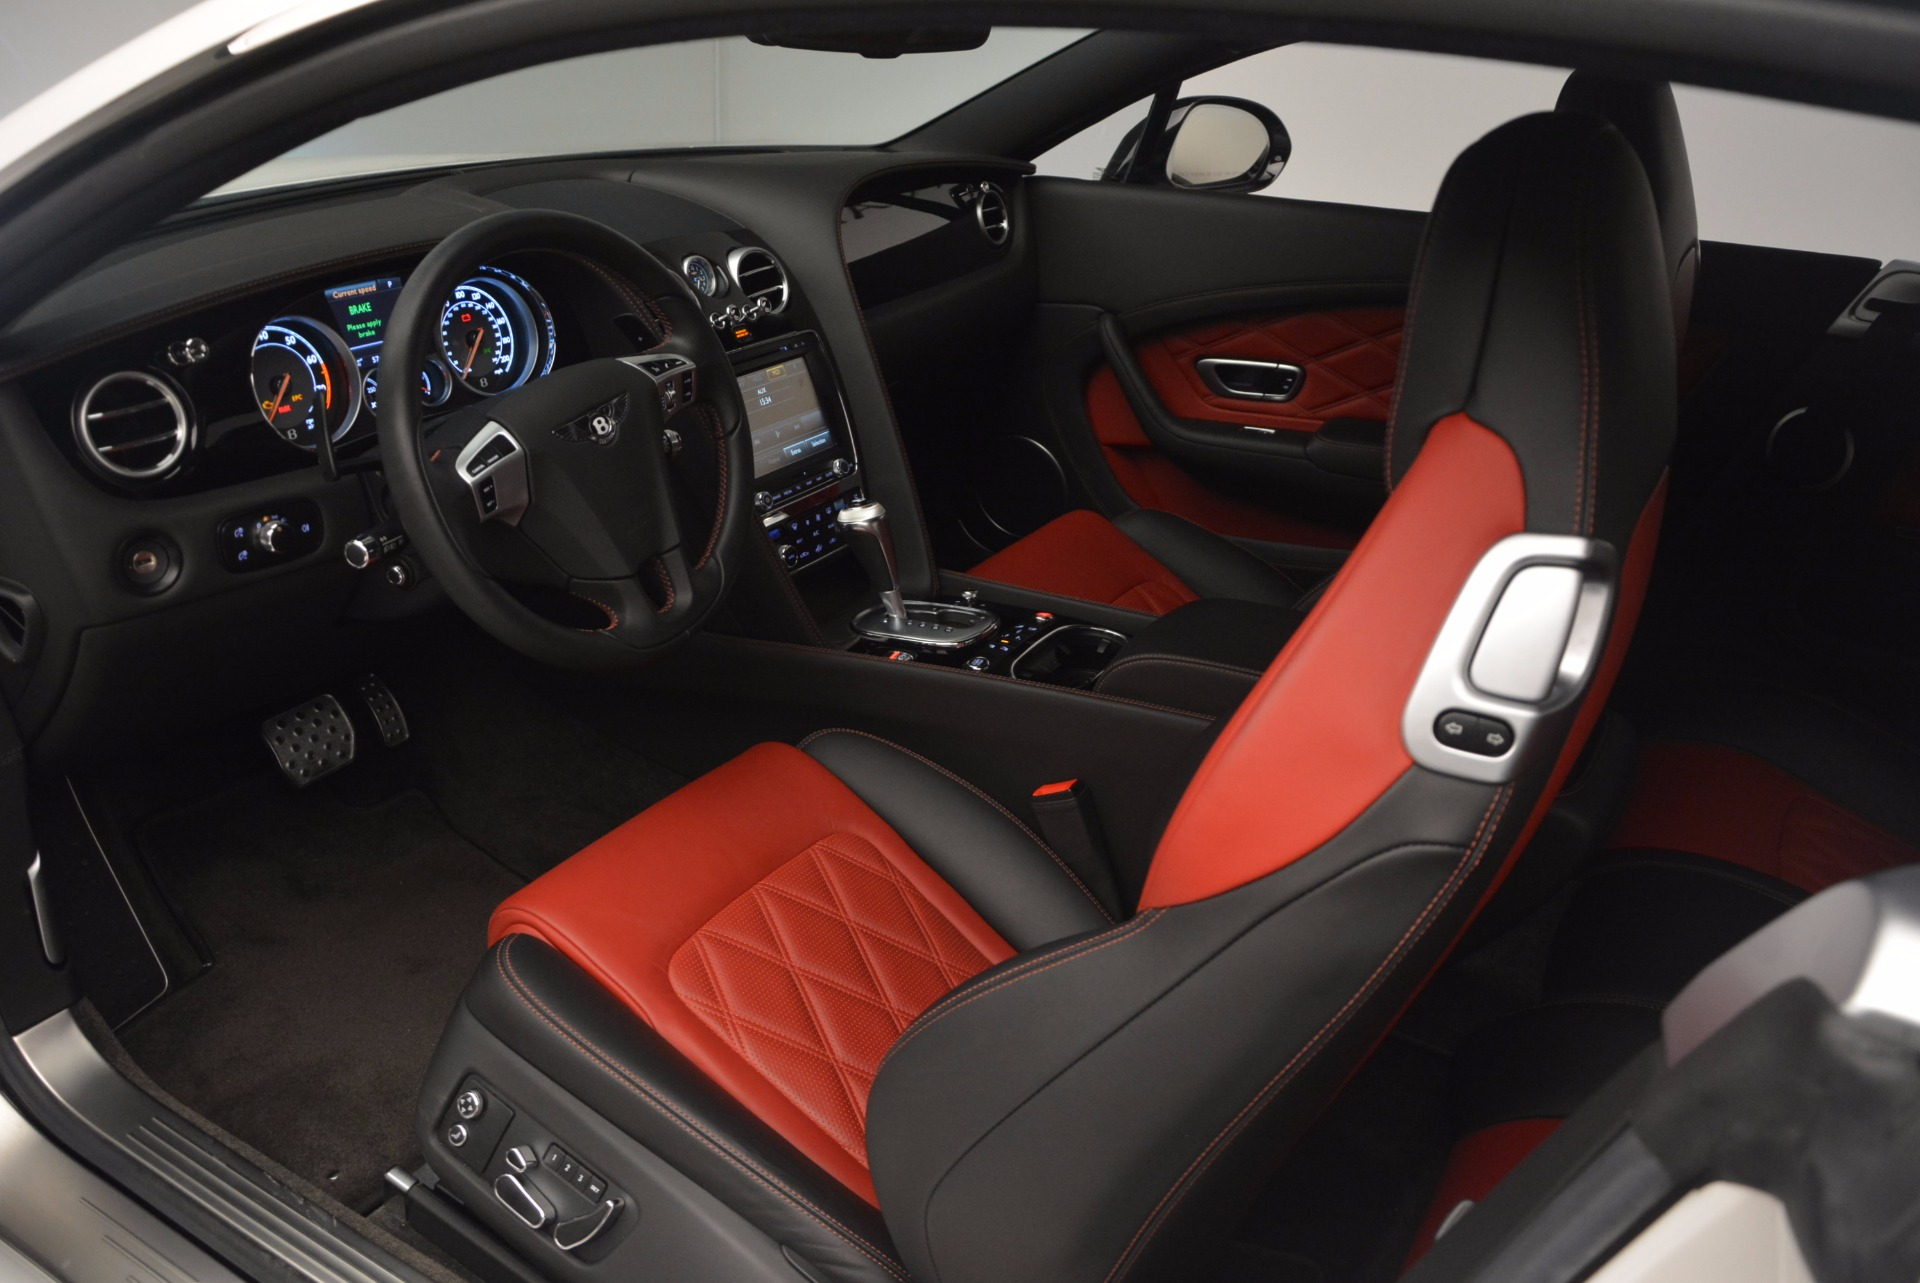 Used 2014 Bentley Continental GT V8 S For Sale In Greenwich, CT. Alfa Romeo of Greenwich, 7135 806_p27